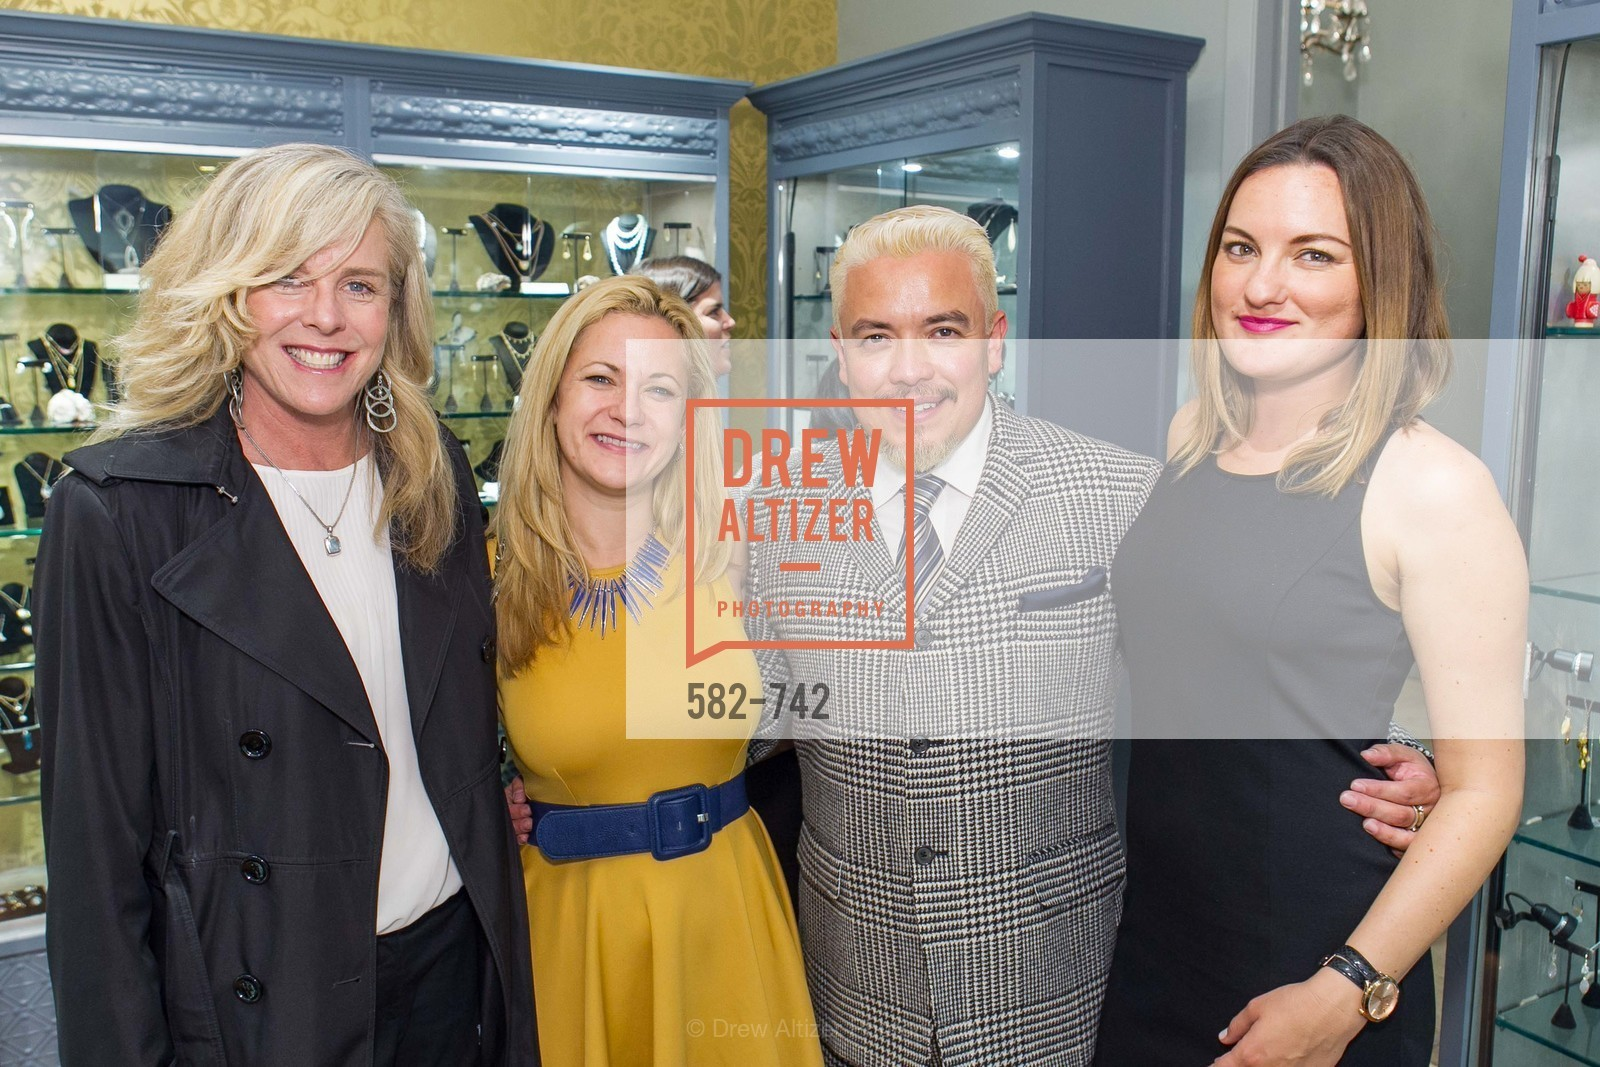 Denise Lamott, Danielle Shareshian, Victor Vargas, Rena Ramirez, LUXETIGERS & GALLERY OF JEWELS Benefit for Dress for Success, US, May 21st, 2015,Drew Altizer, Drew Altizer Photography, full-service agency, private events, San Francisco photographer, photographer california